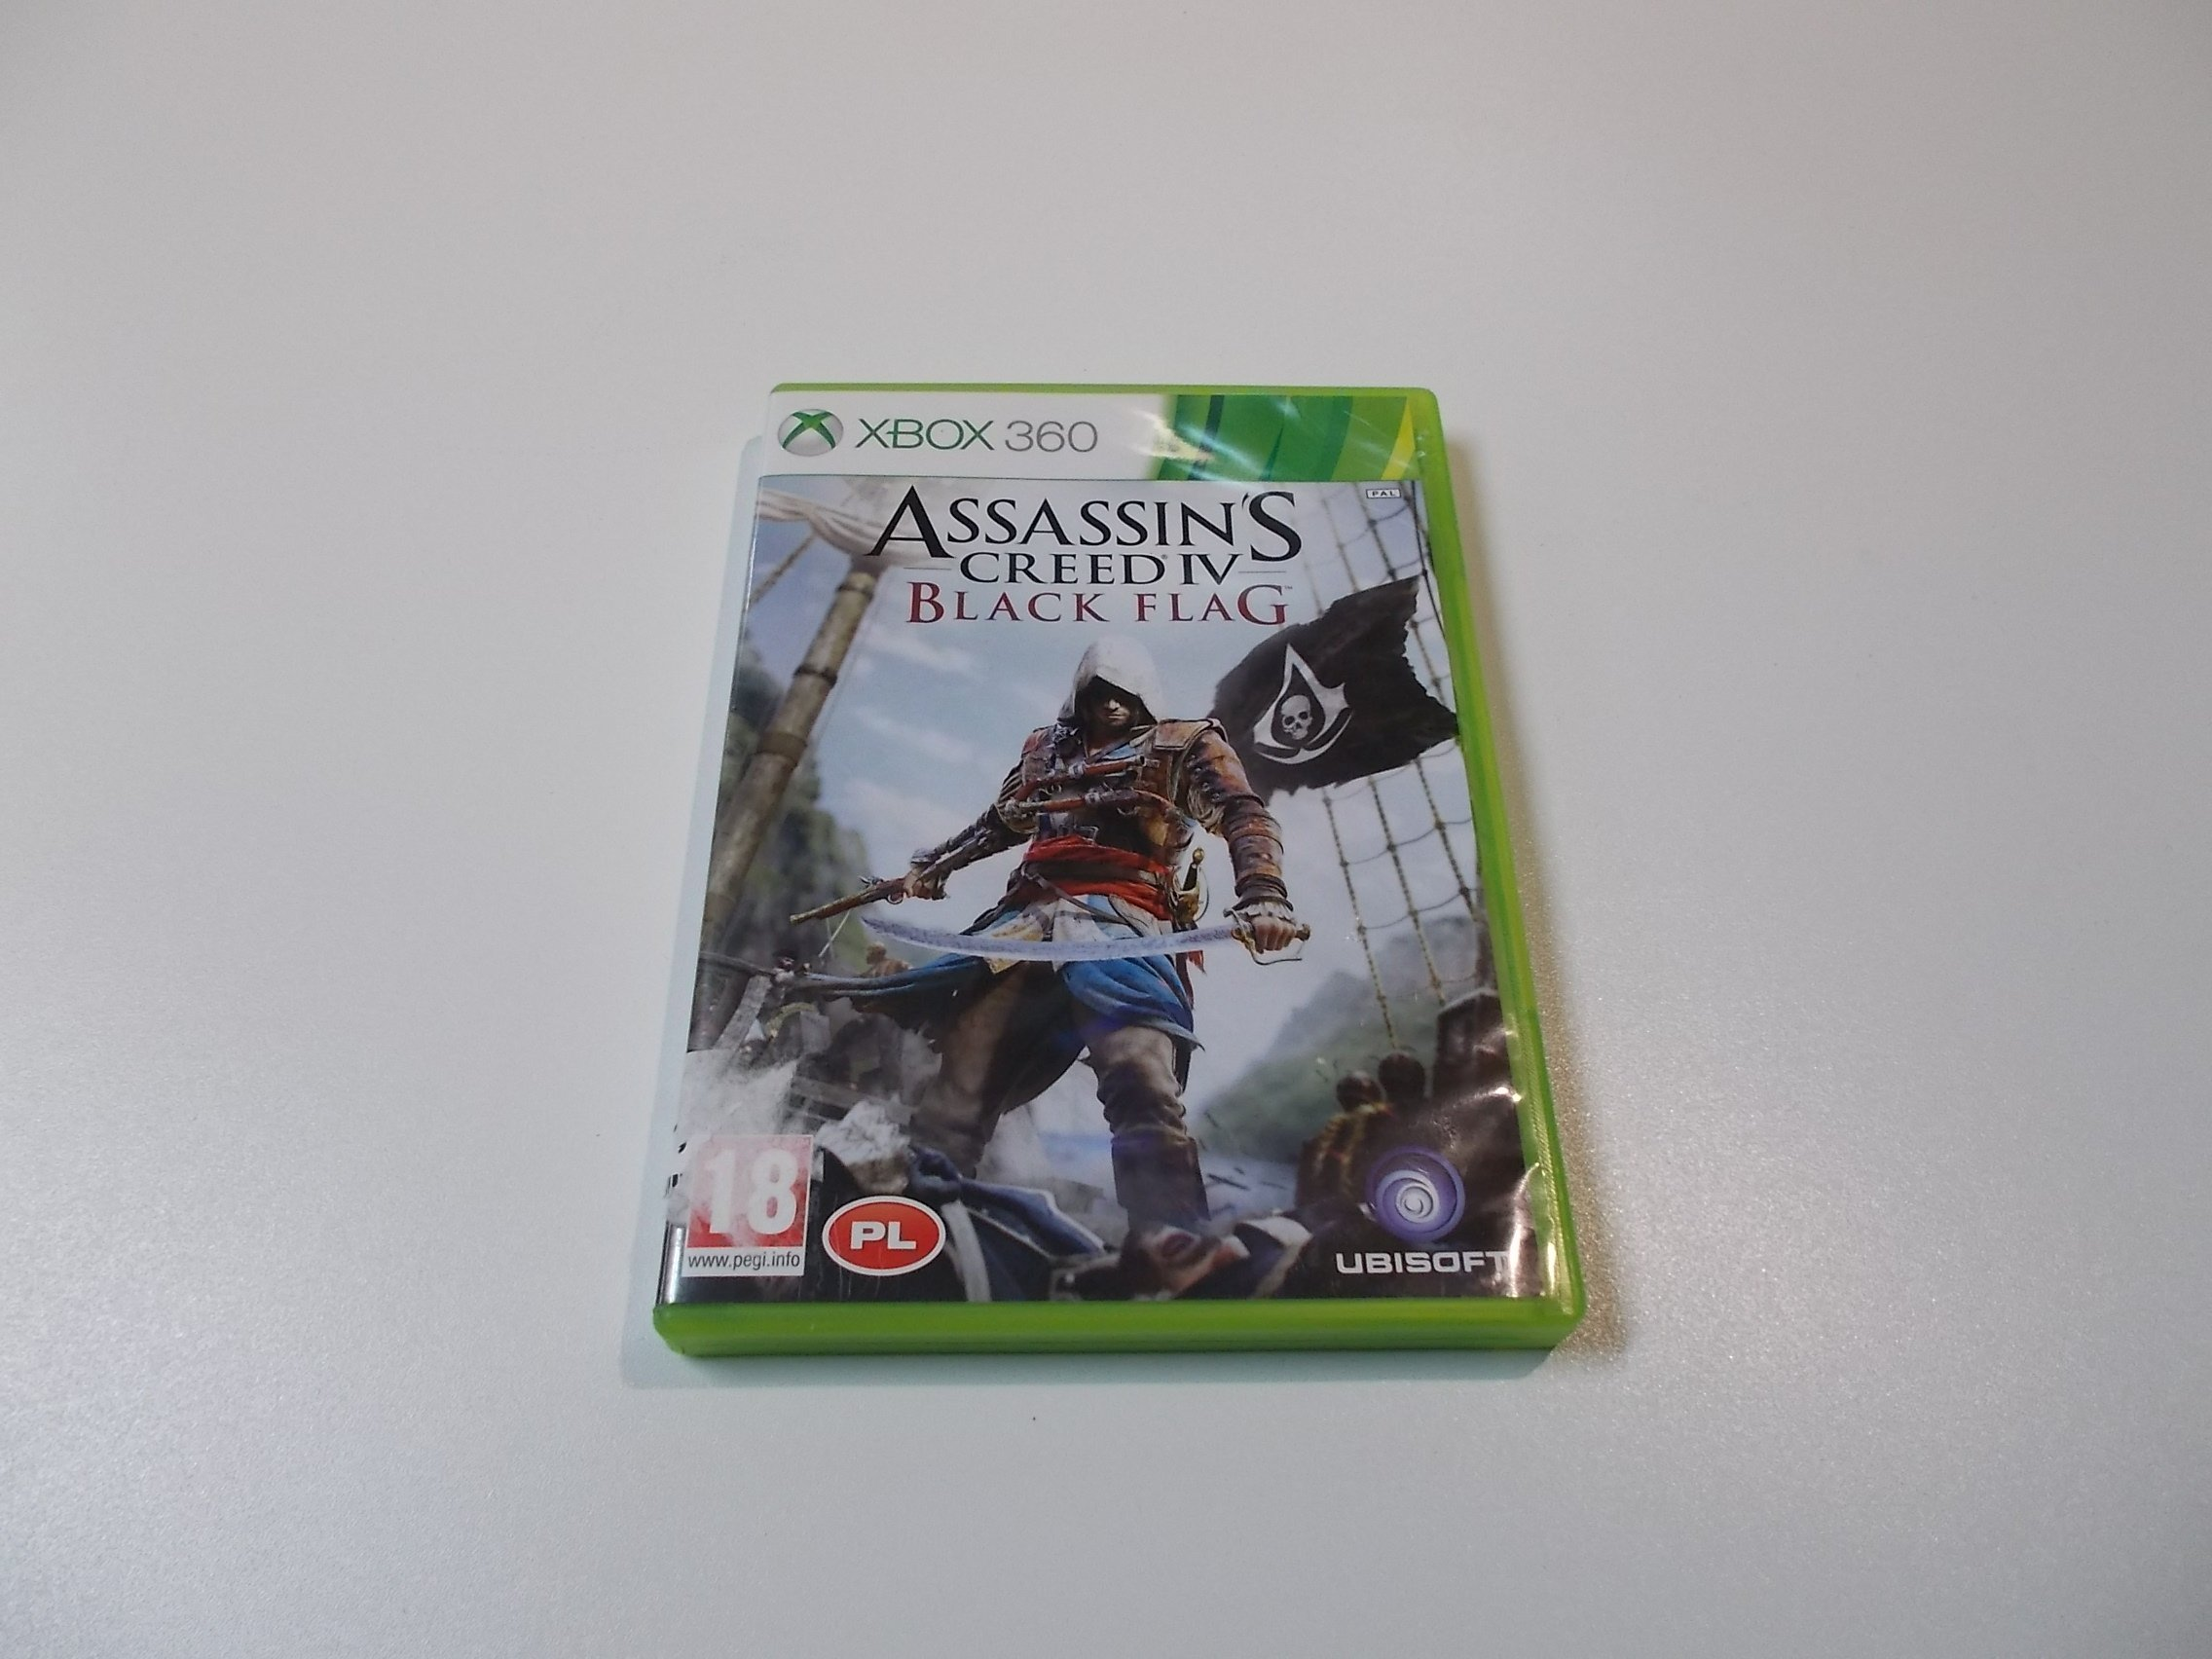 Assassin's Creed IV: Black Flag - GRA Xbox 360 - Sklep